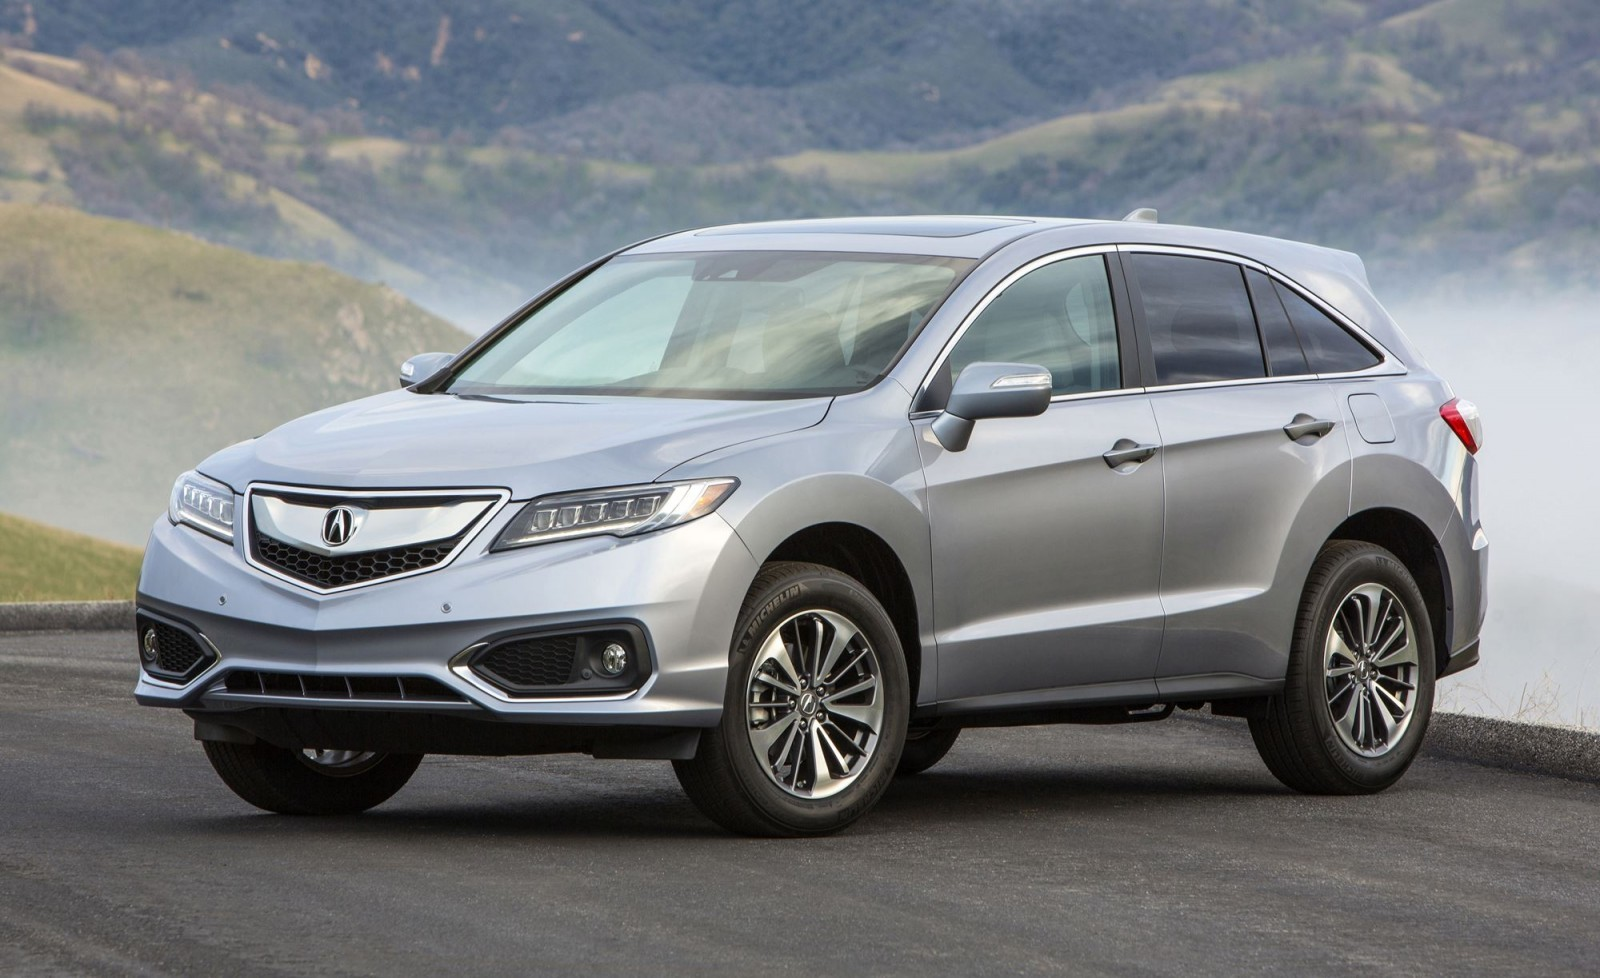 2016 acura rdx. Black Bedroom Furniture Sets. Home Design Ideas